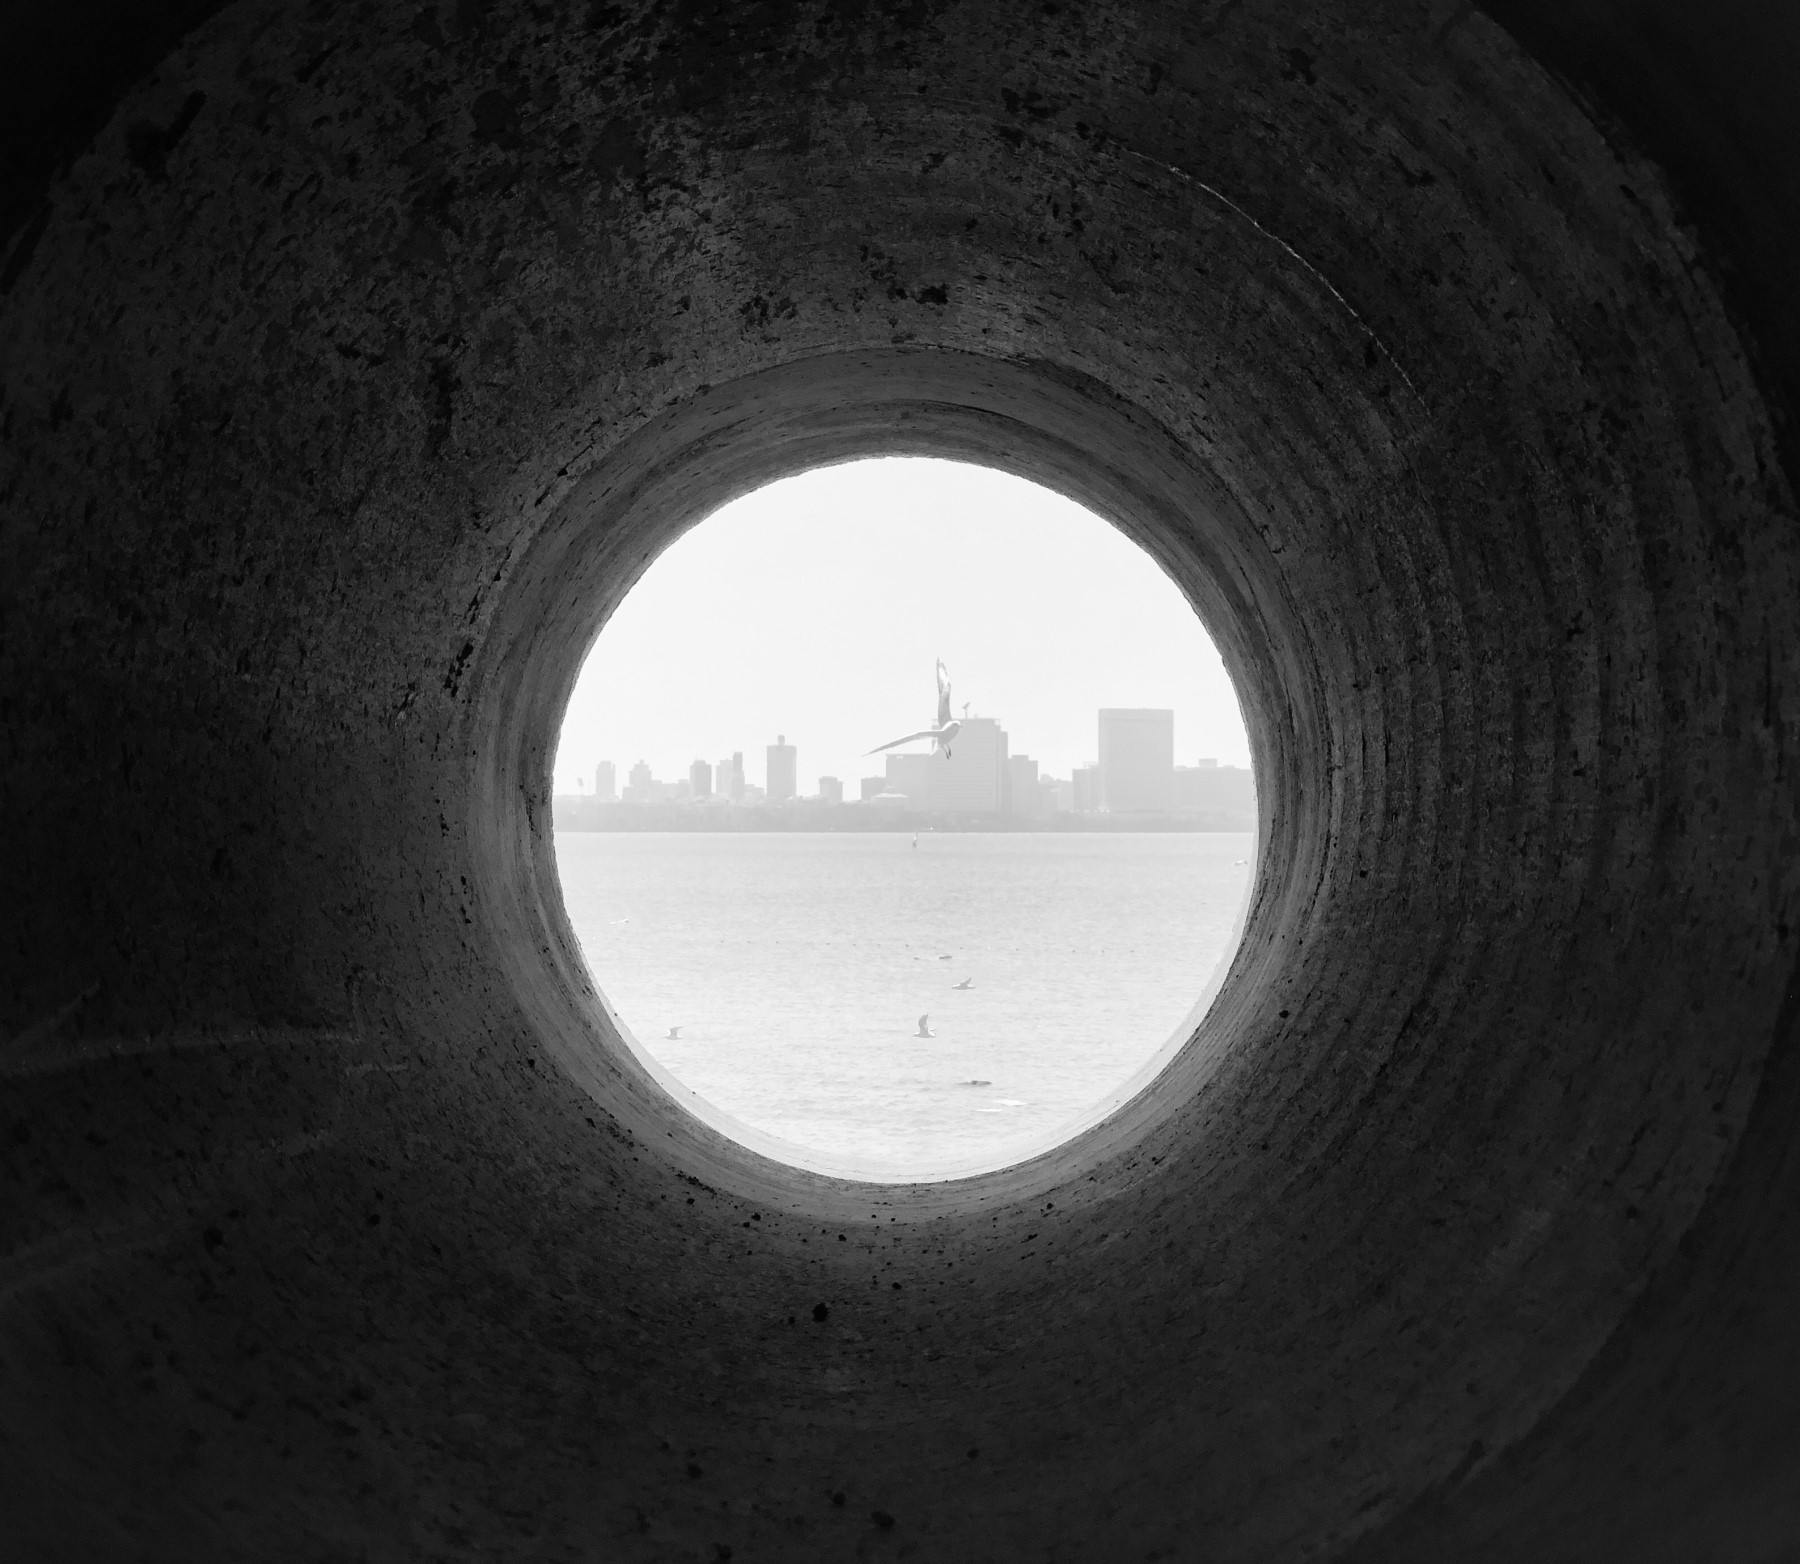 Mayur_Sarma_World through a water pipe.jpg